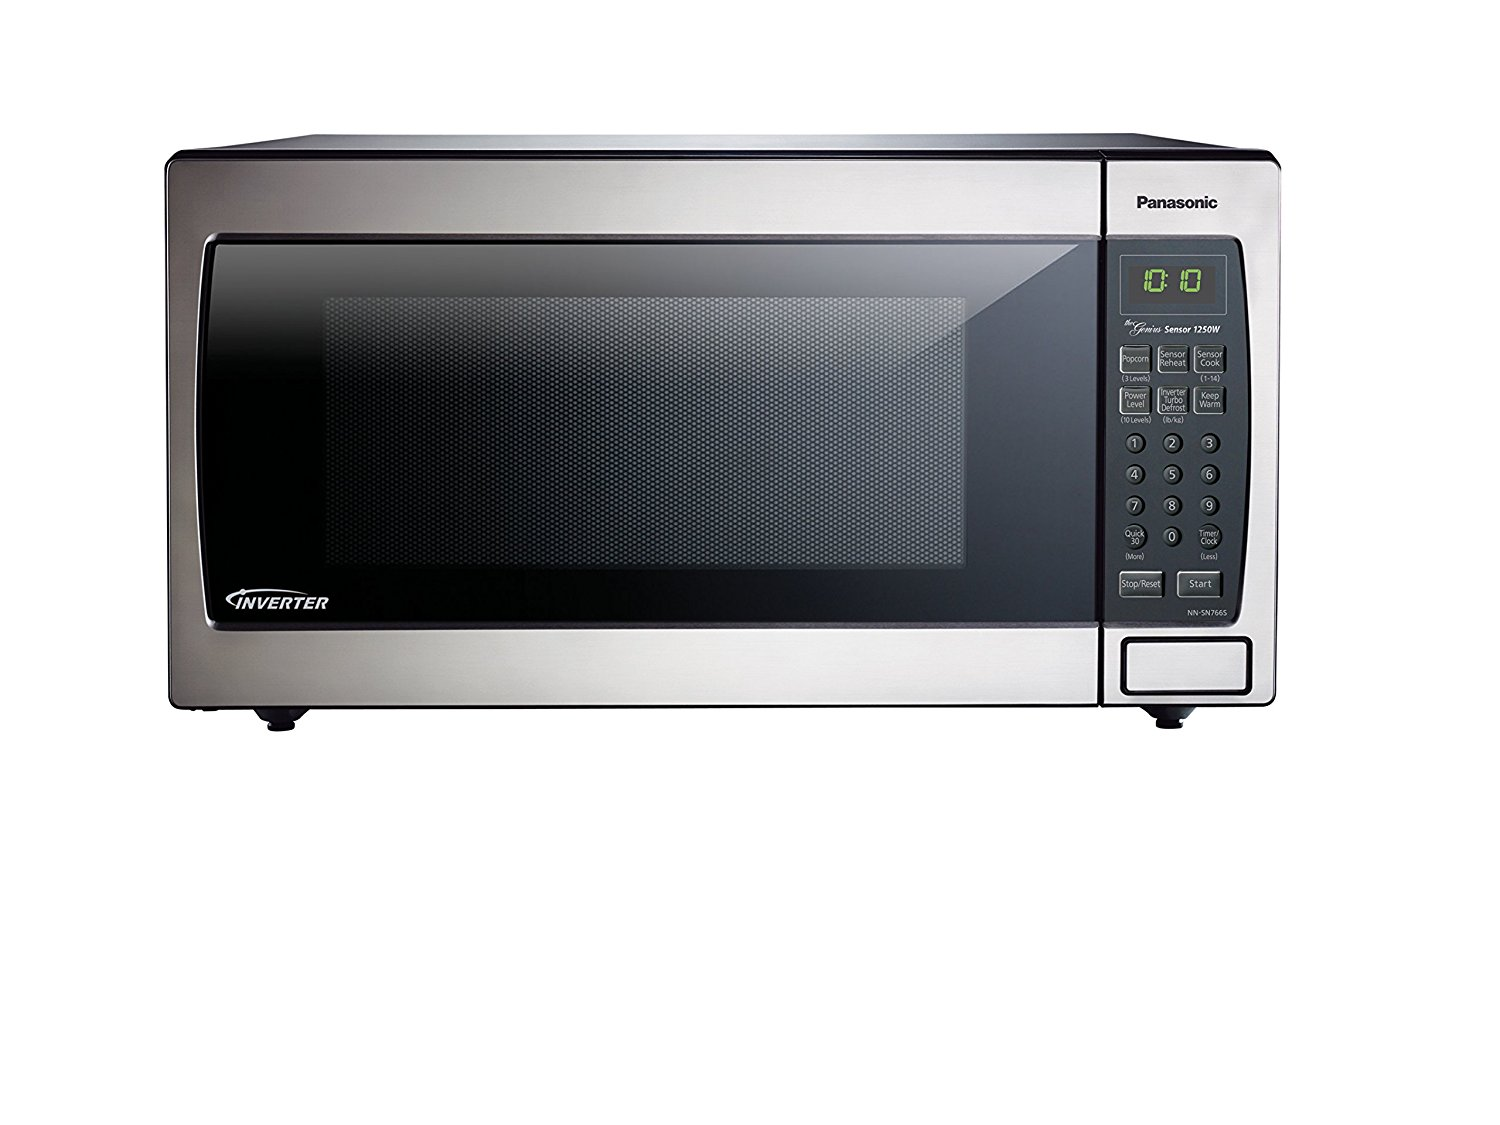 Panasonic NN-SN766S Countertop/Built-In Microwave with Inverter Technology, 1.6 cu. ft. , Stainless